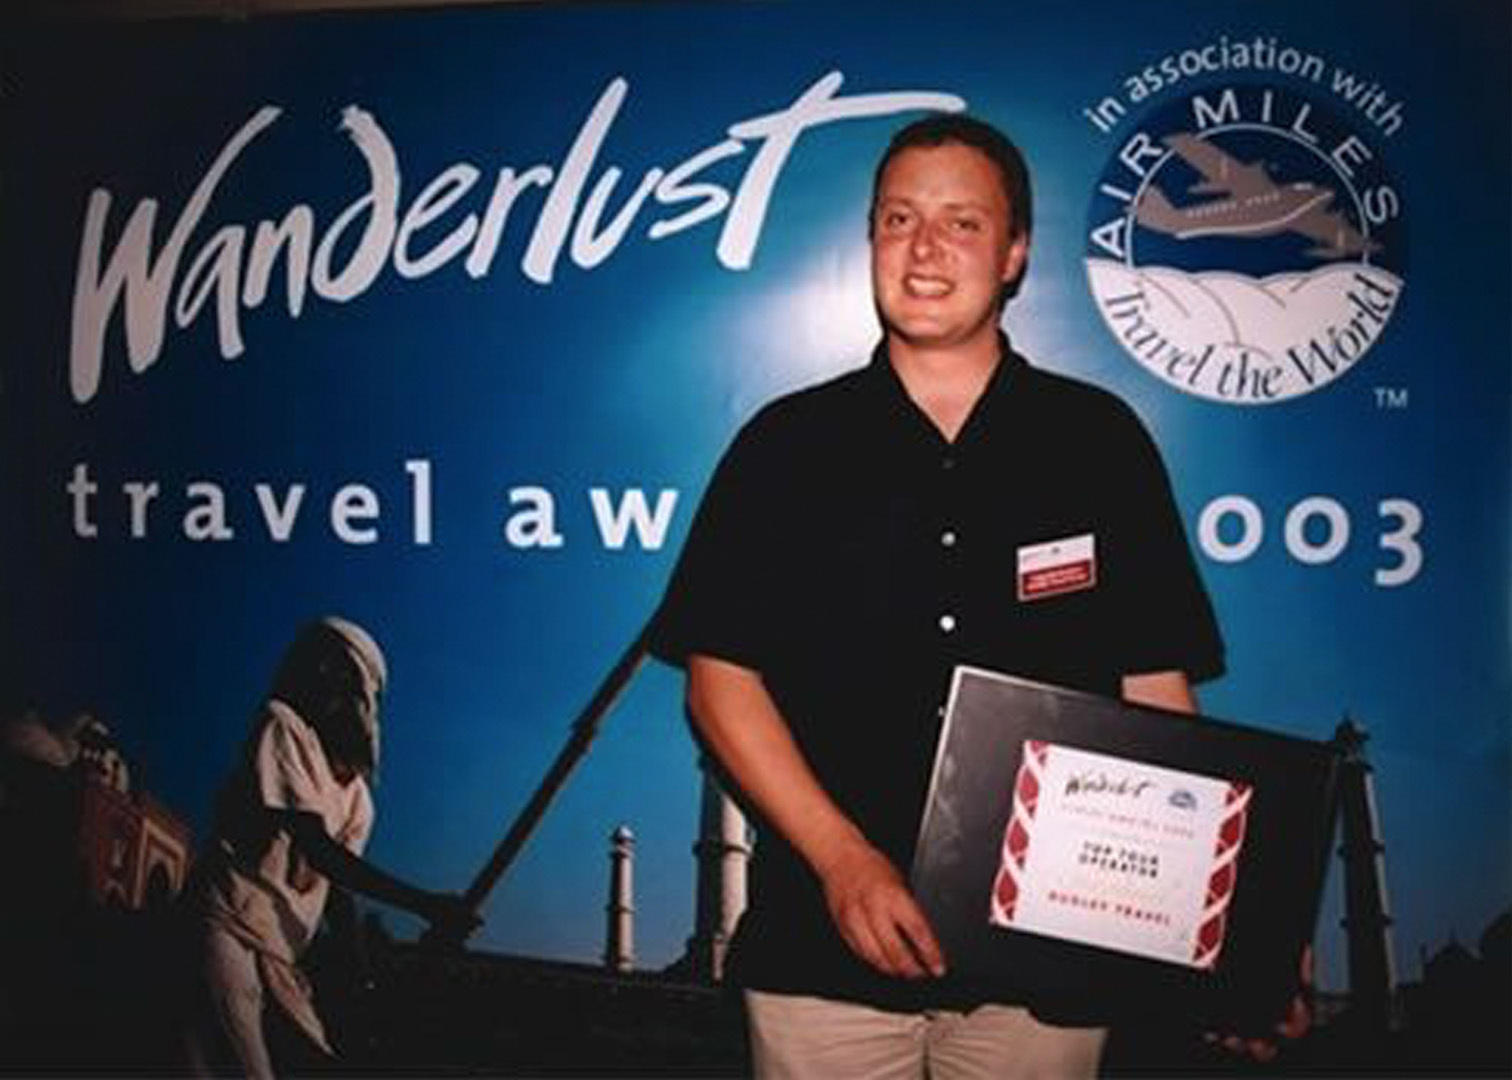 Craig accepting the 2003 Wanderlust award